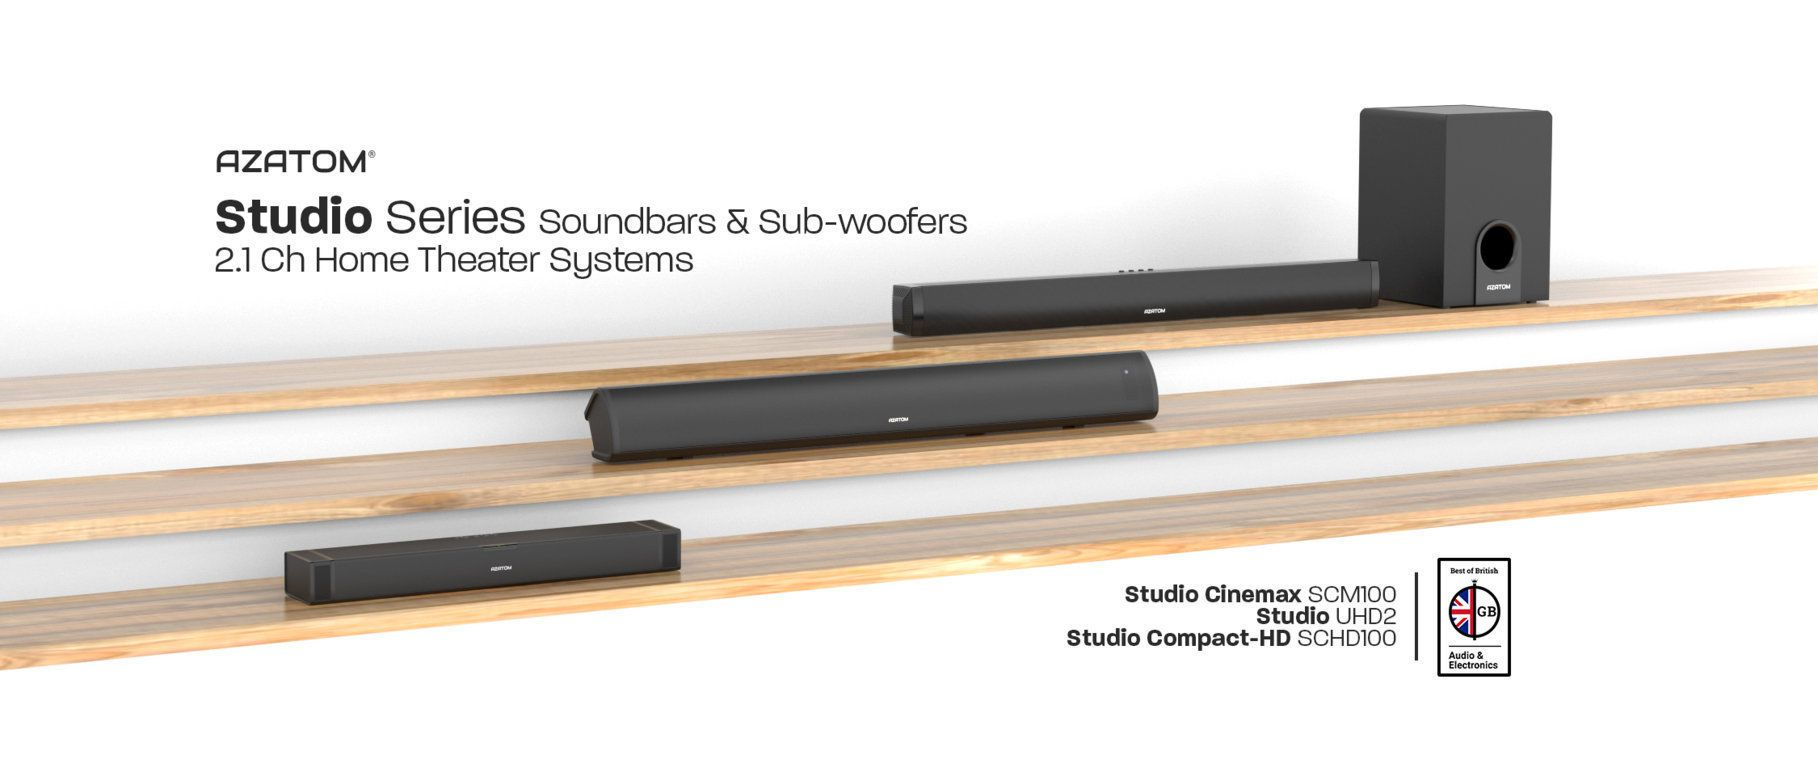 Introducing the Studio Soundbar Series